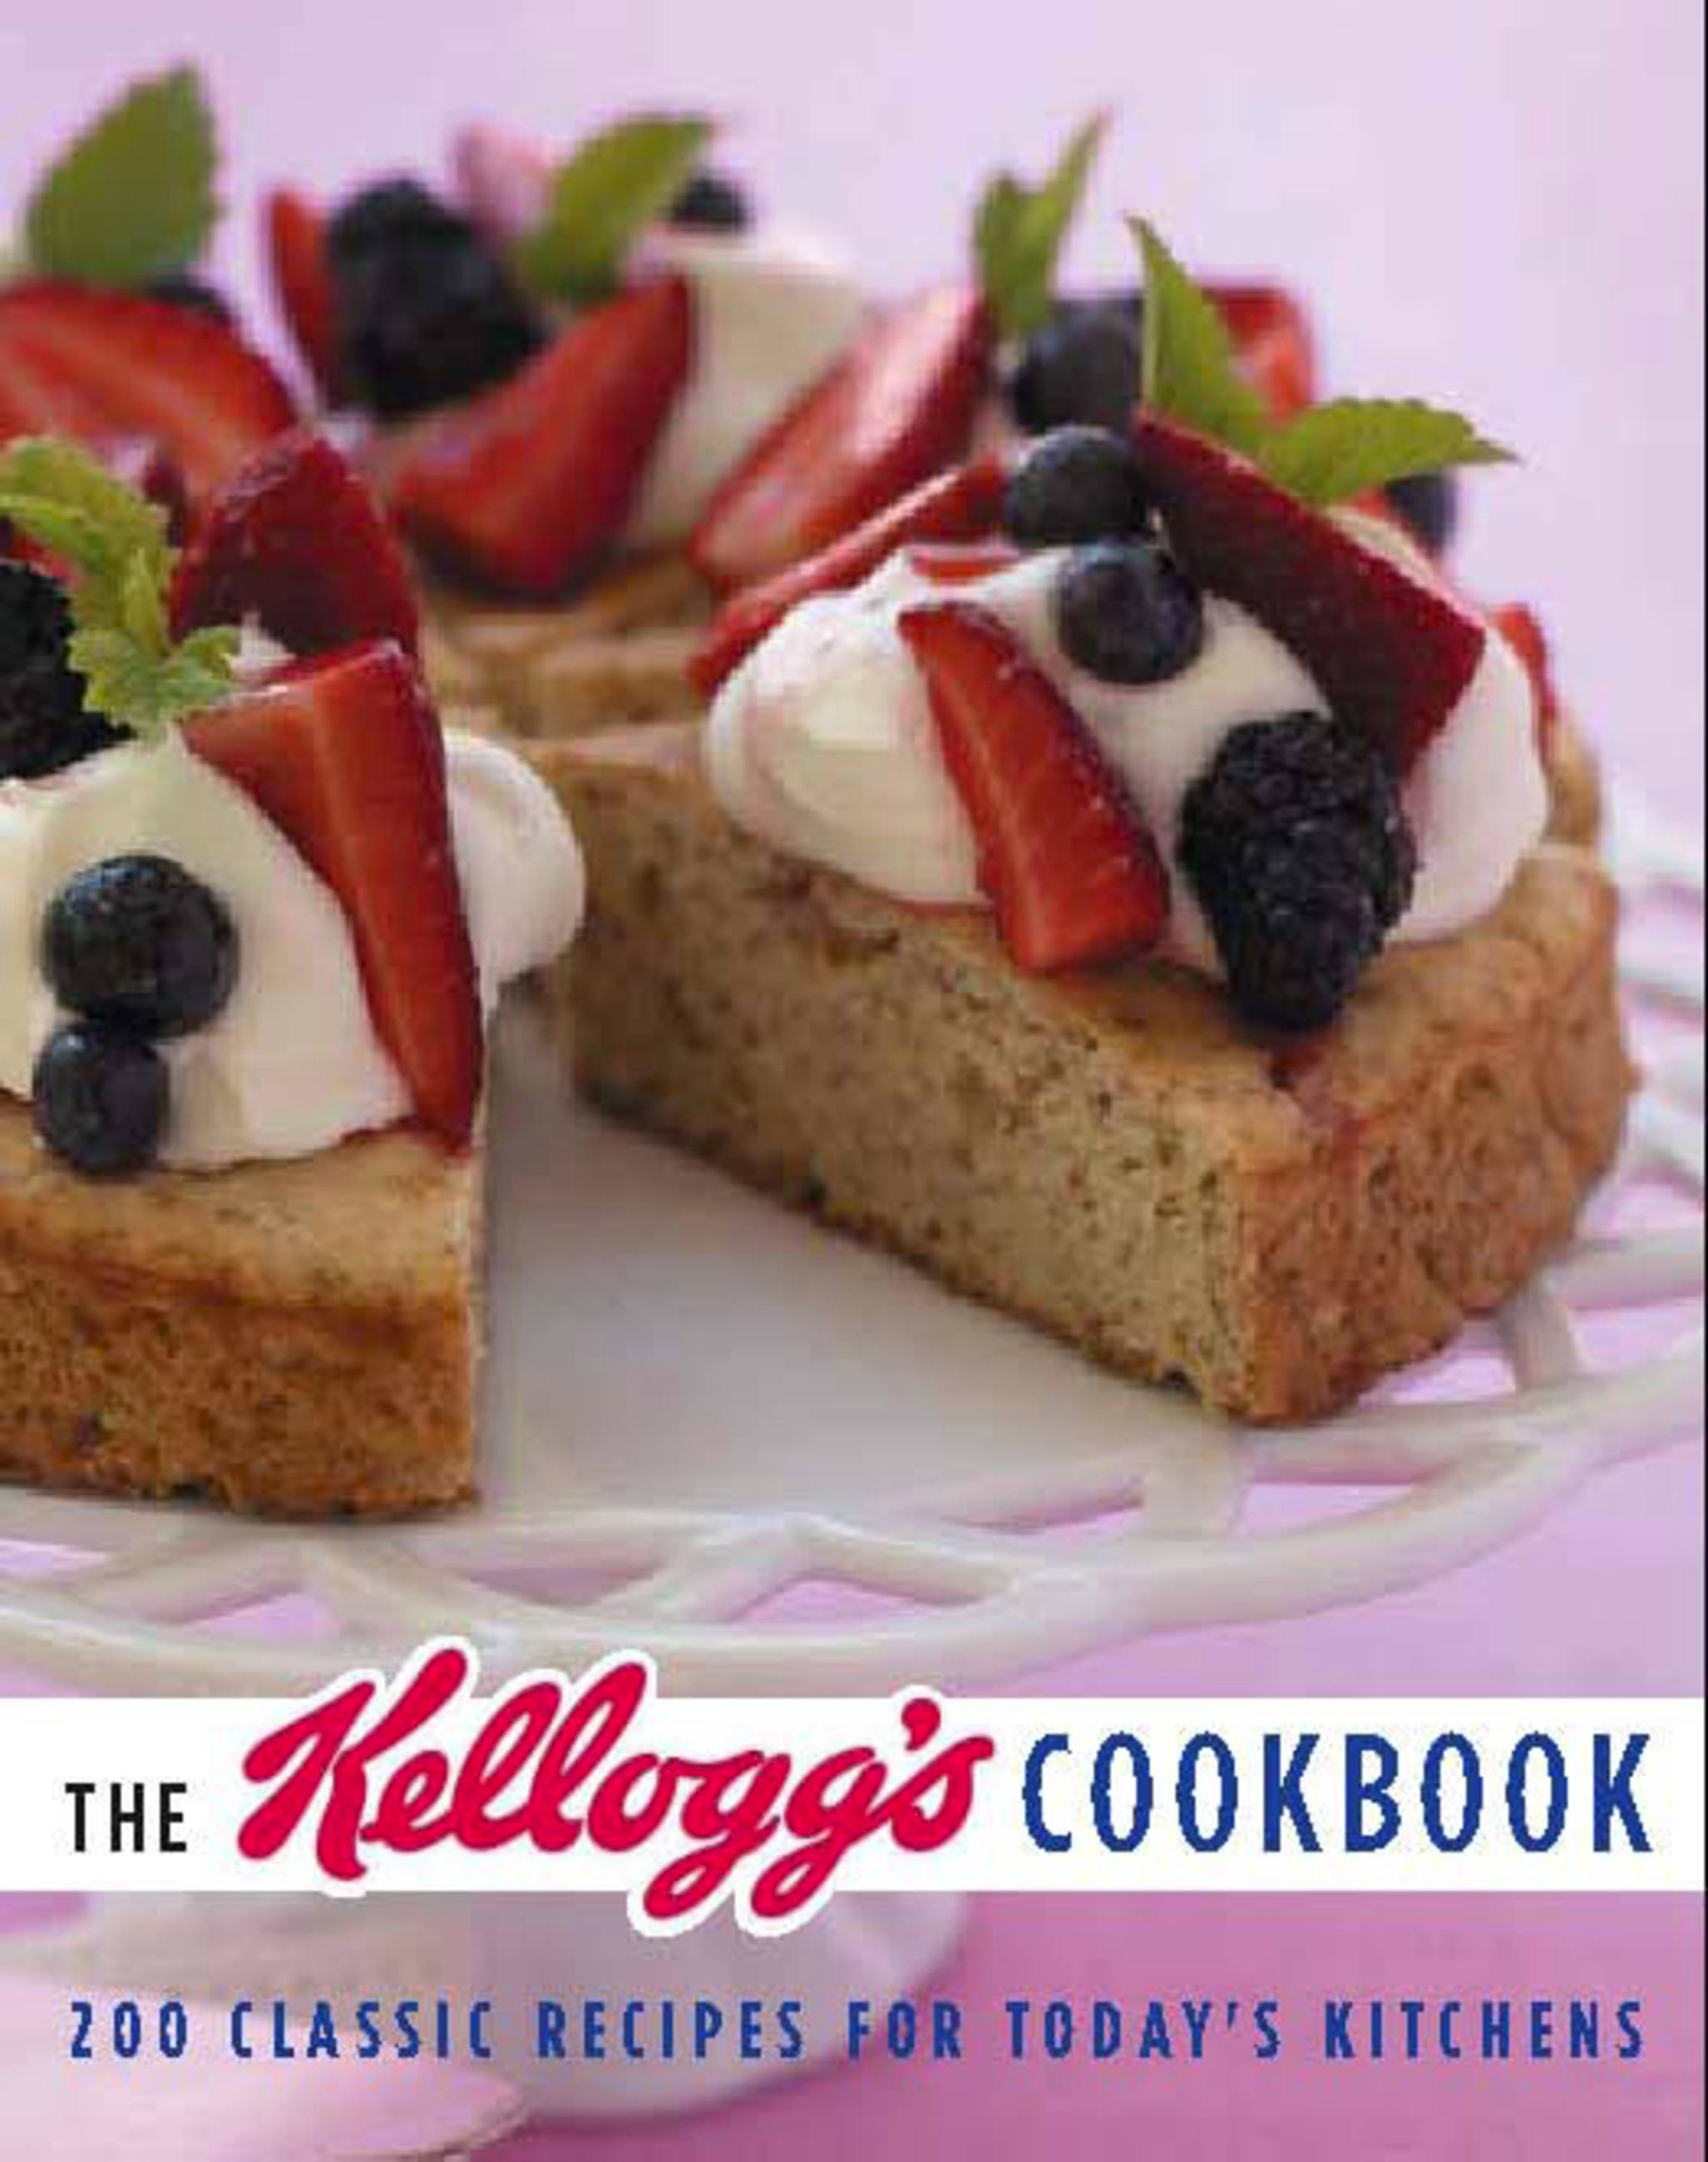 Kellogg's Cookbook, The